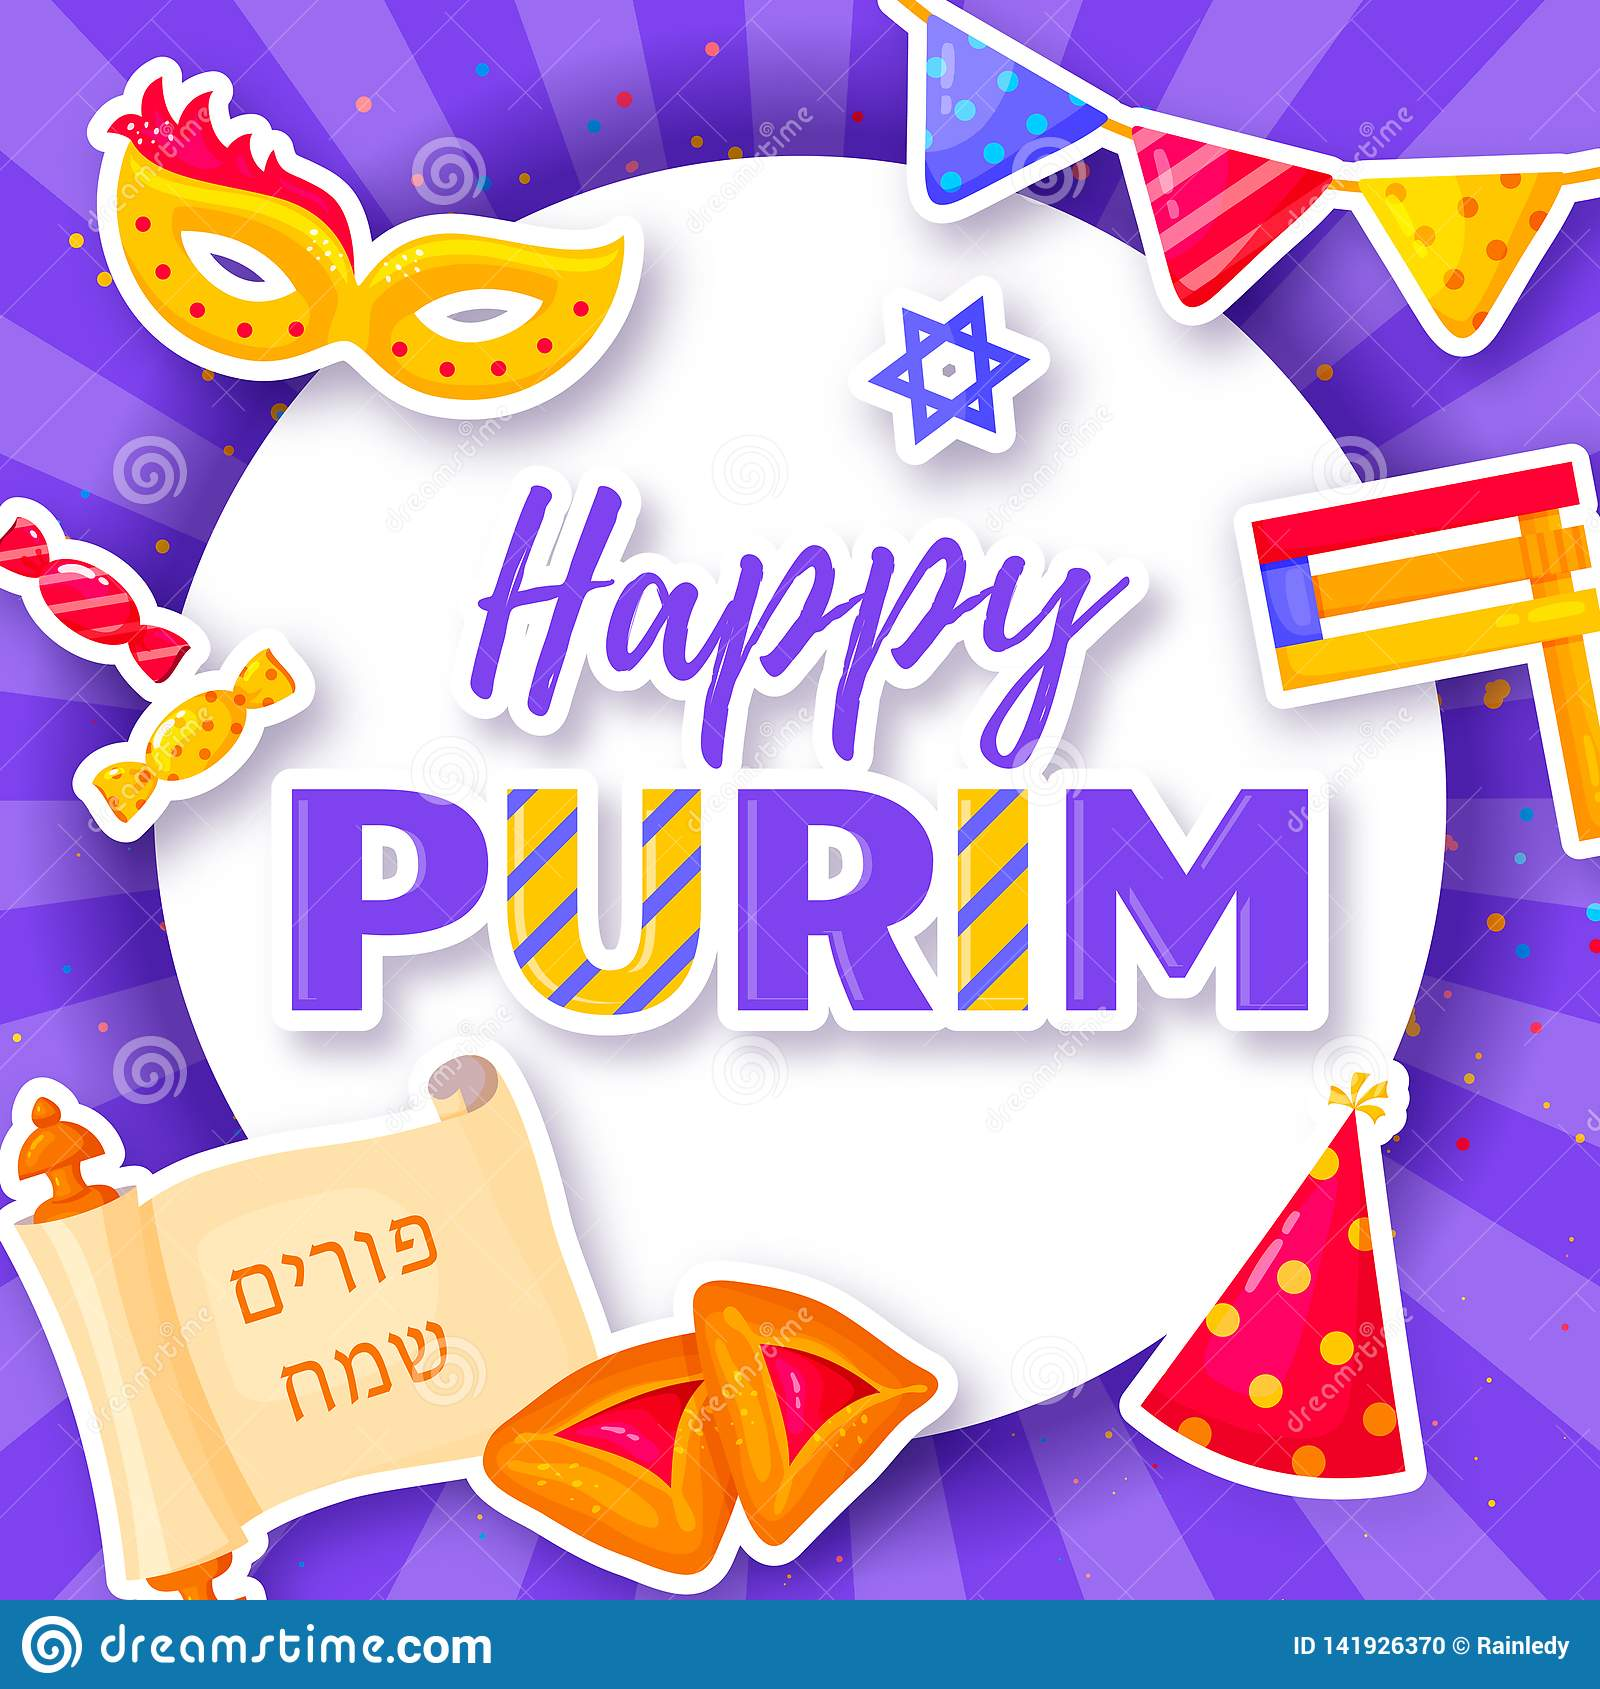 Happy Purim - Greeting Card For Jewish Holiday. Vector